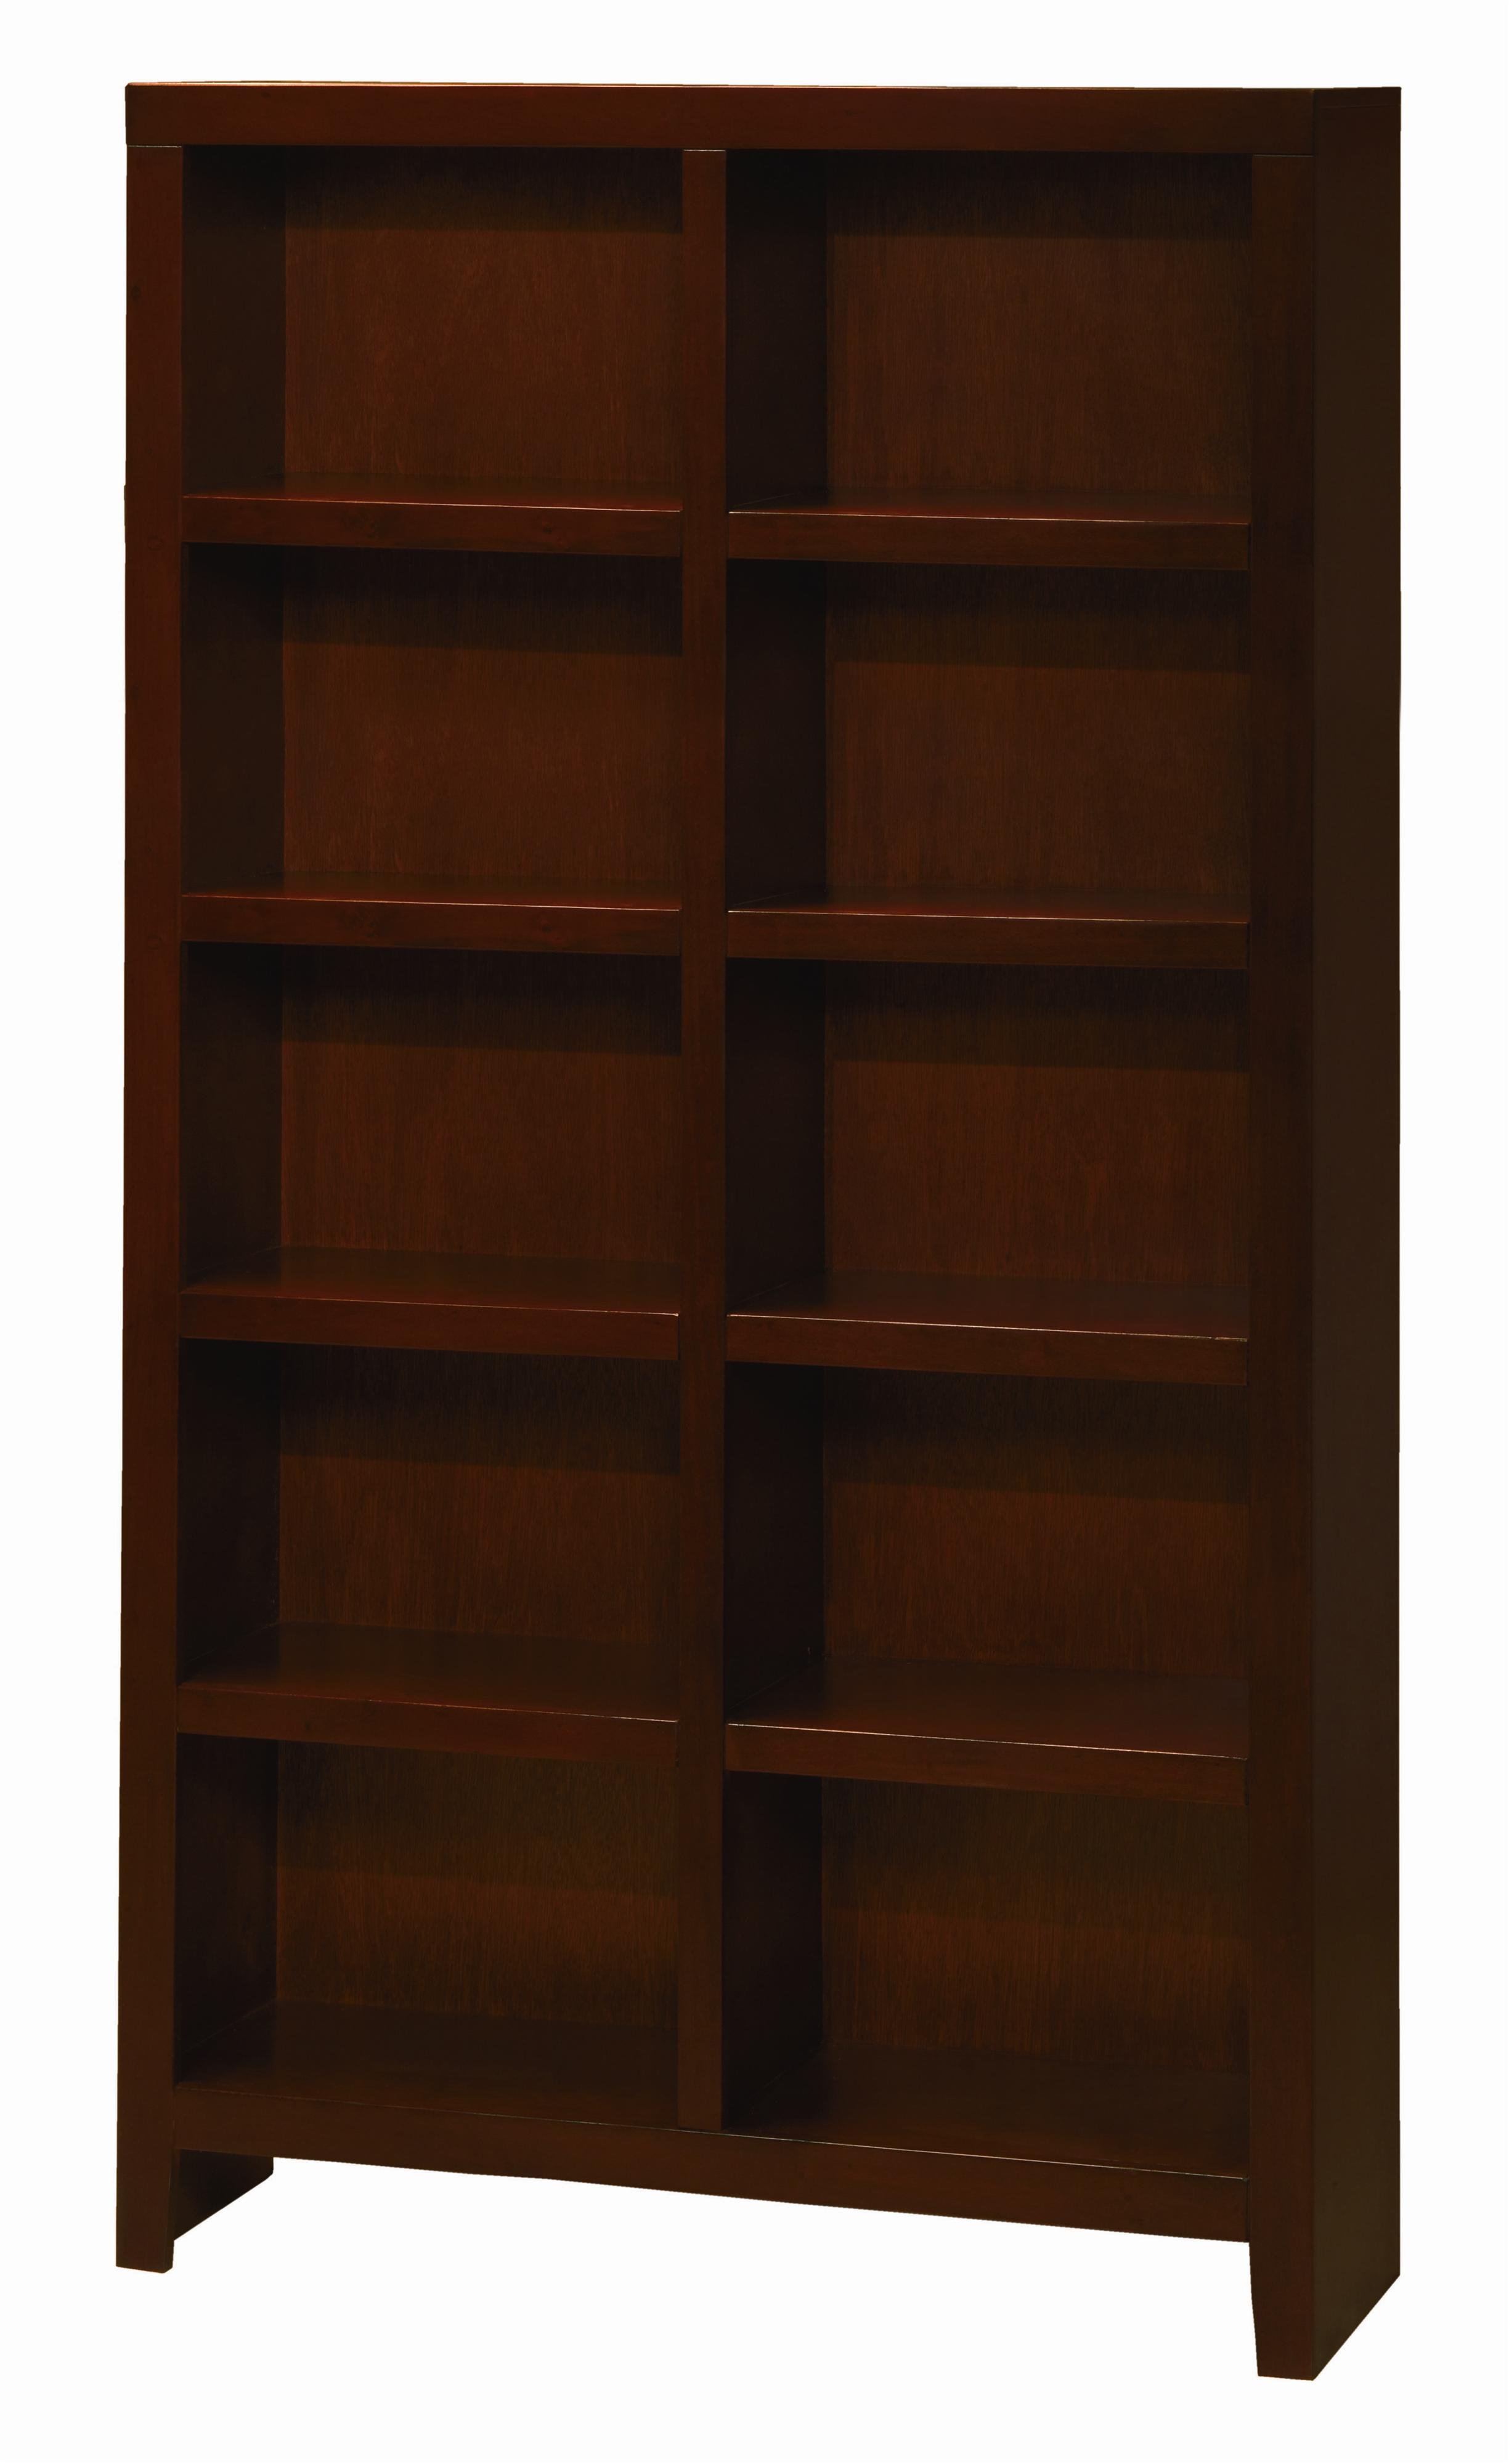 Aspenhome Essentials Lifestyle 77 Inch Cube Bookcase - Item Number: CL4077-CHY